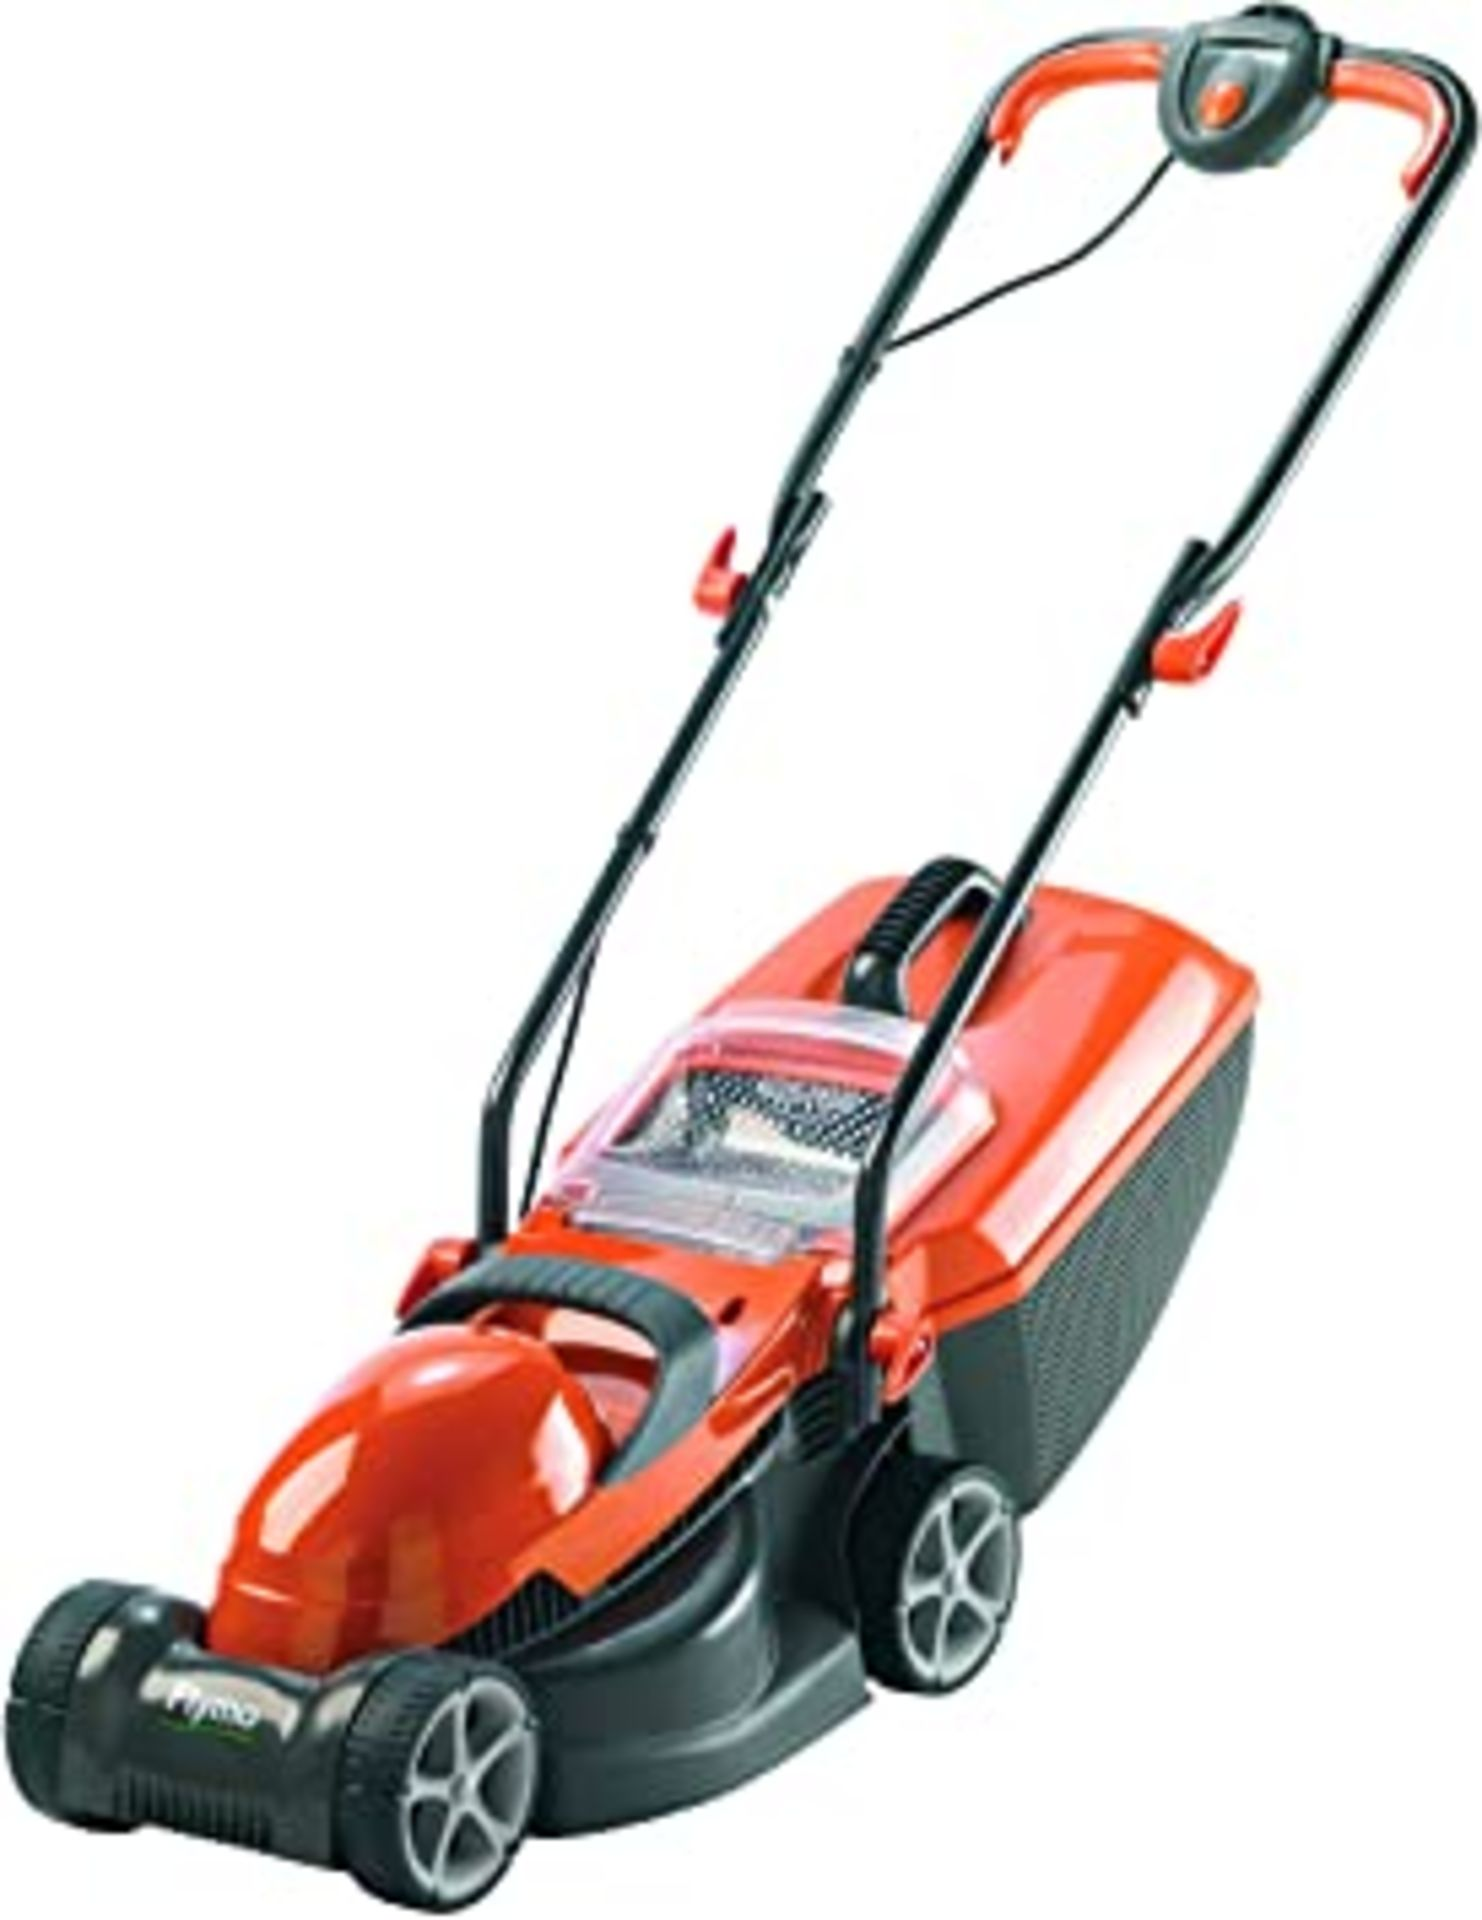 (P8) 2x Flymo Items. 1x Chevron 32V Electric Wheeled Lawnmower. 1x Contour 500E 3 In 1 Trimmer.